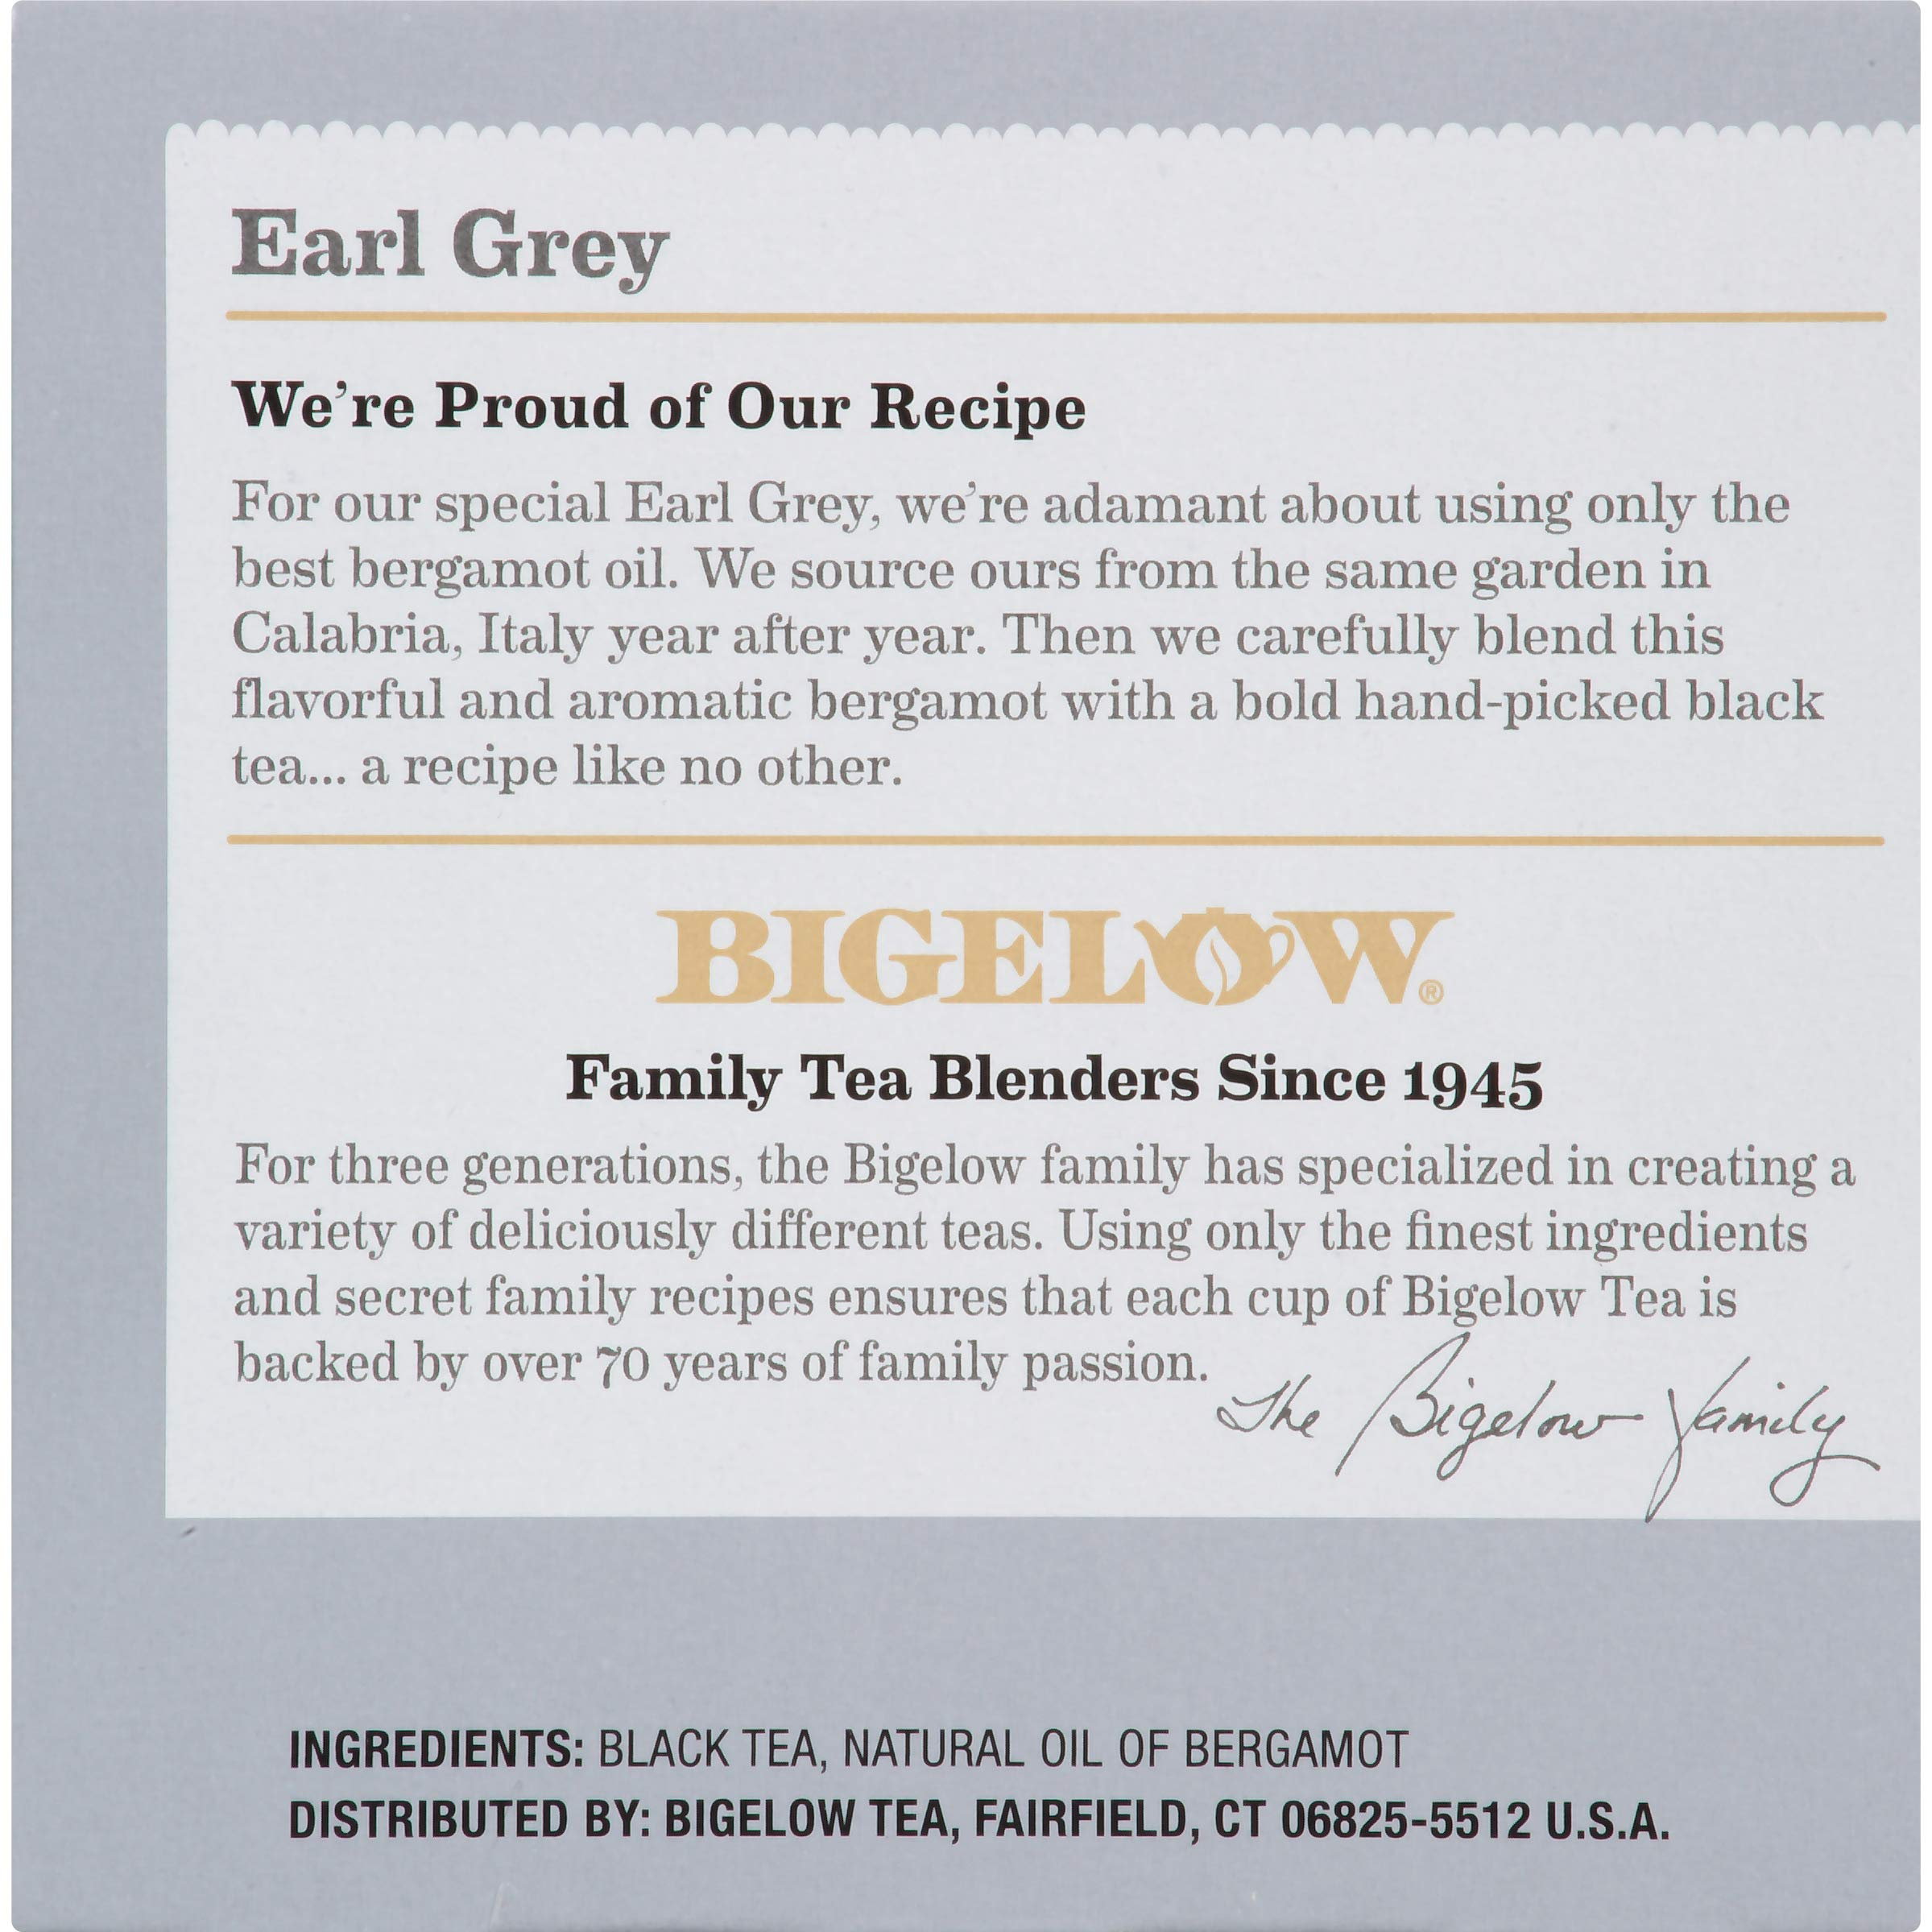 Bigelow Earl Grey Black Tea Keurig K-Cups, Box of 12 Cups (Pack of 6), 72 Tea Bags Total , Single Serve Portion Premium Tea in Pods, Compatible with Keurig and other K Cup Coffee and Tea Brewers by Bigelow Tea (Image #3)